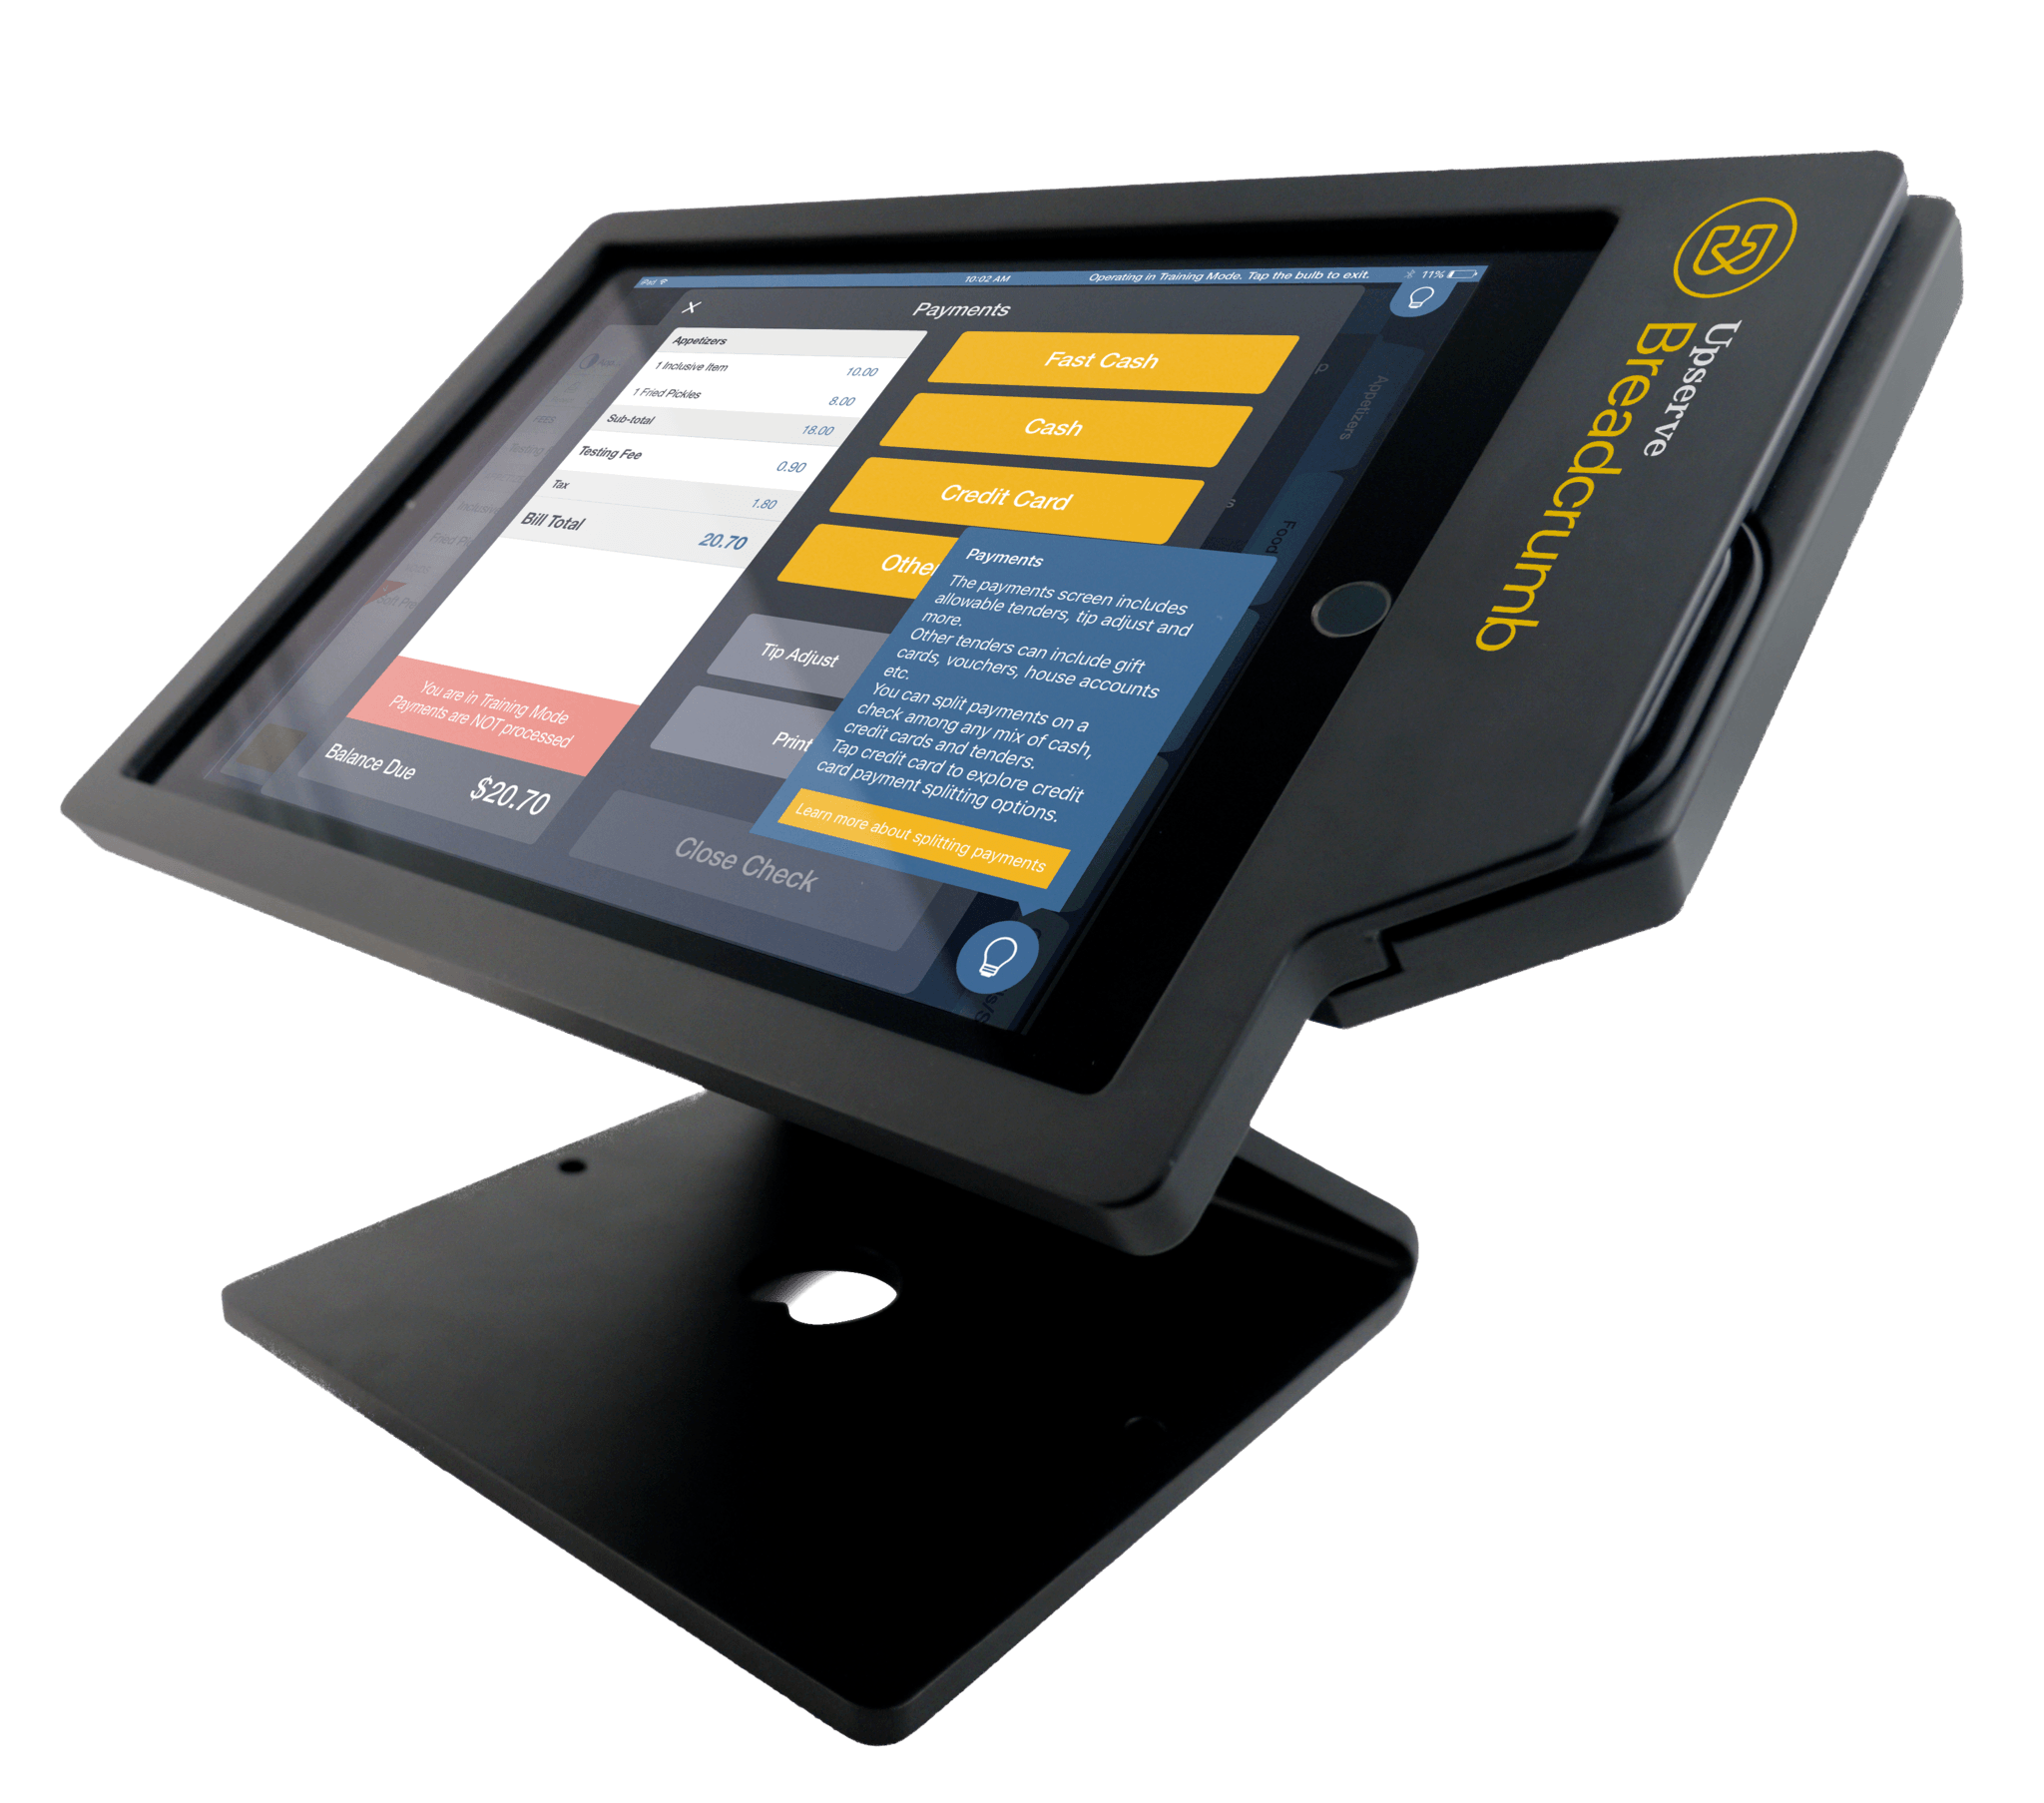 Restaurant POS System - iPad Point of Sale Software | Breadcrumb POS